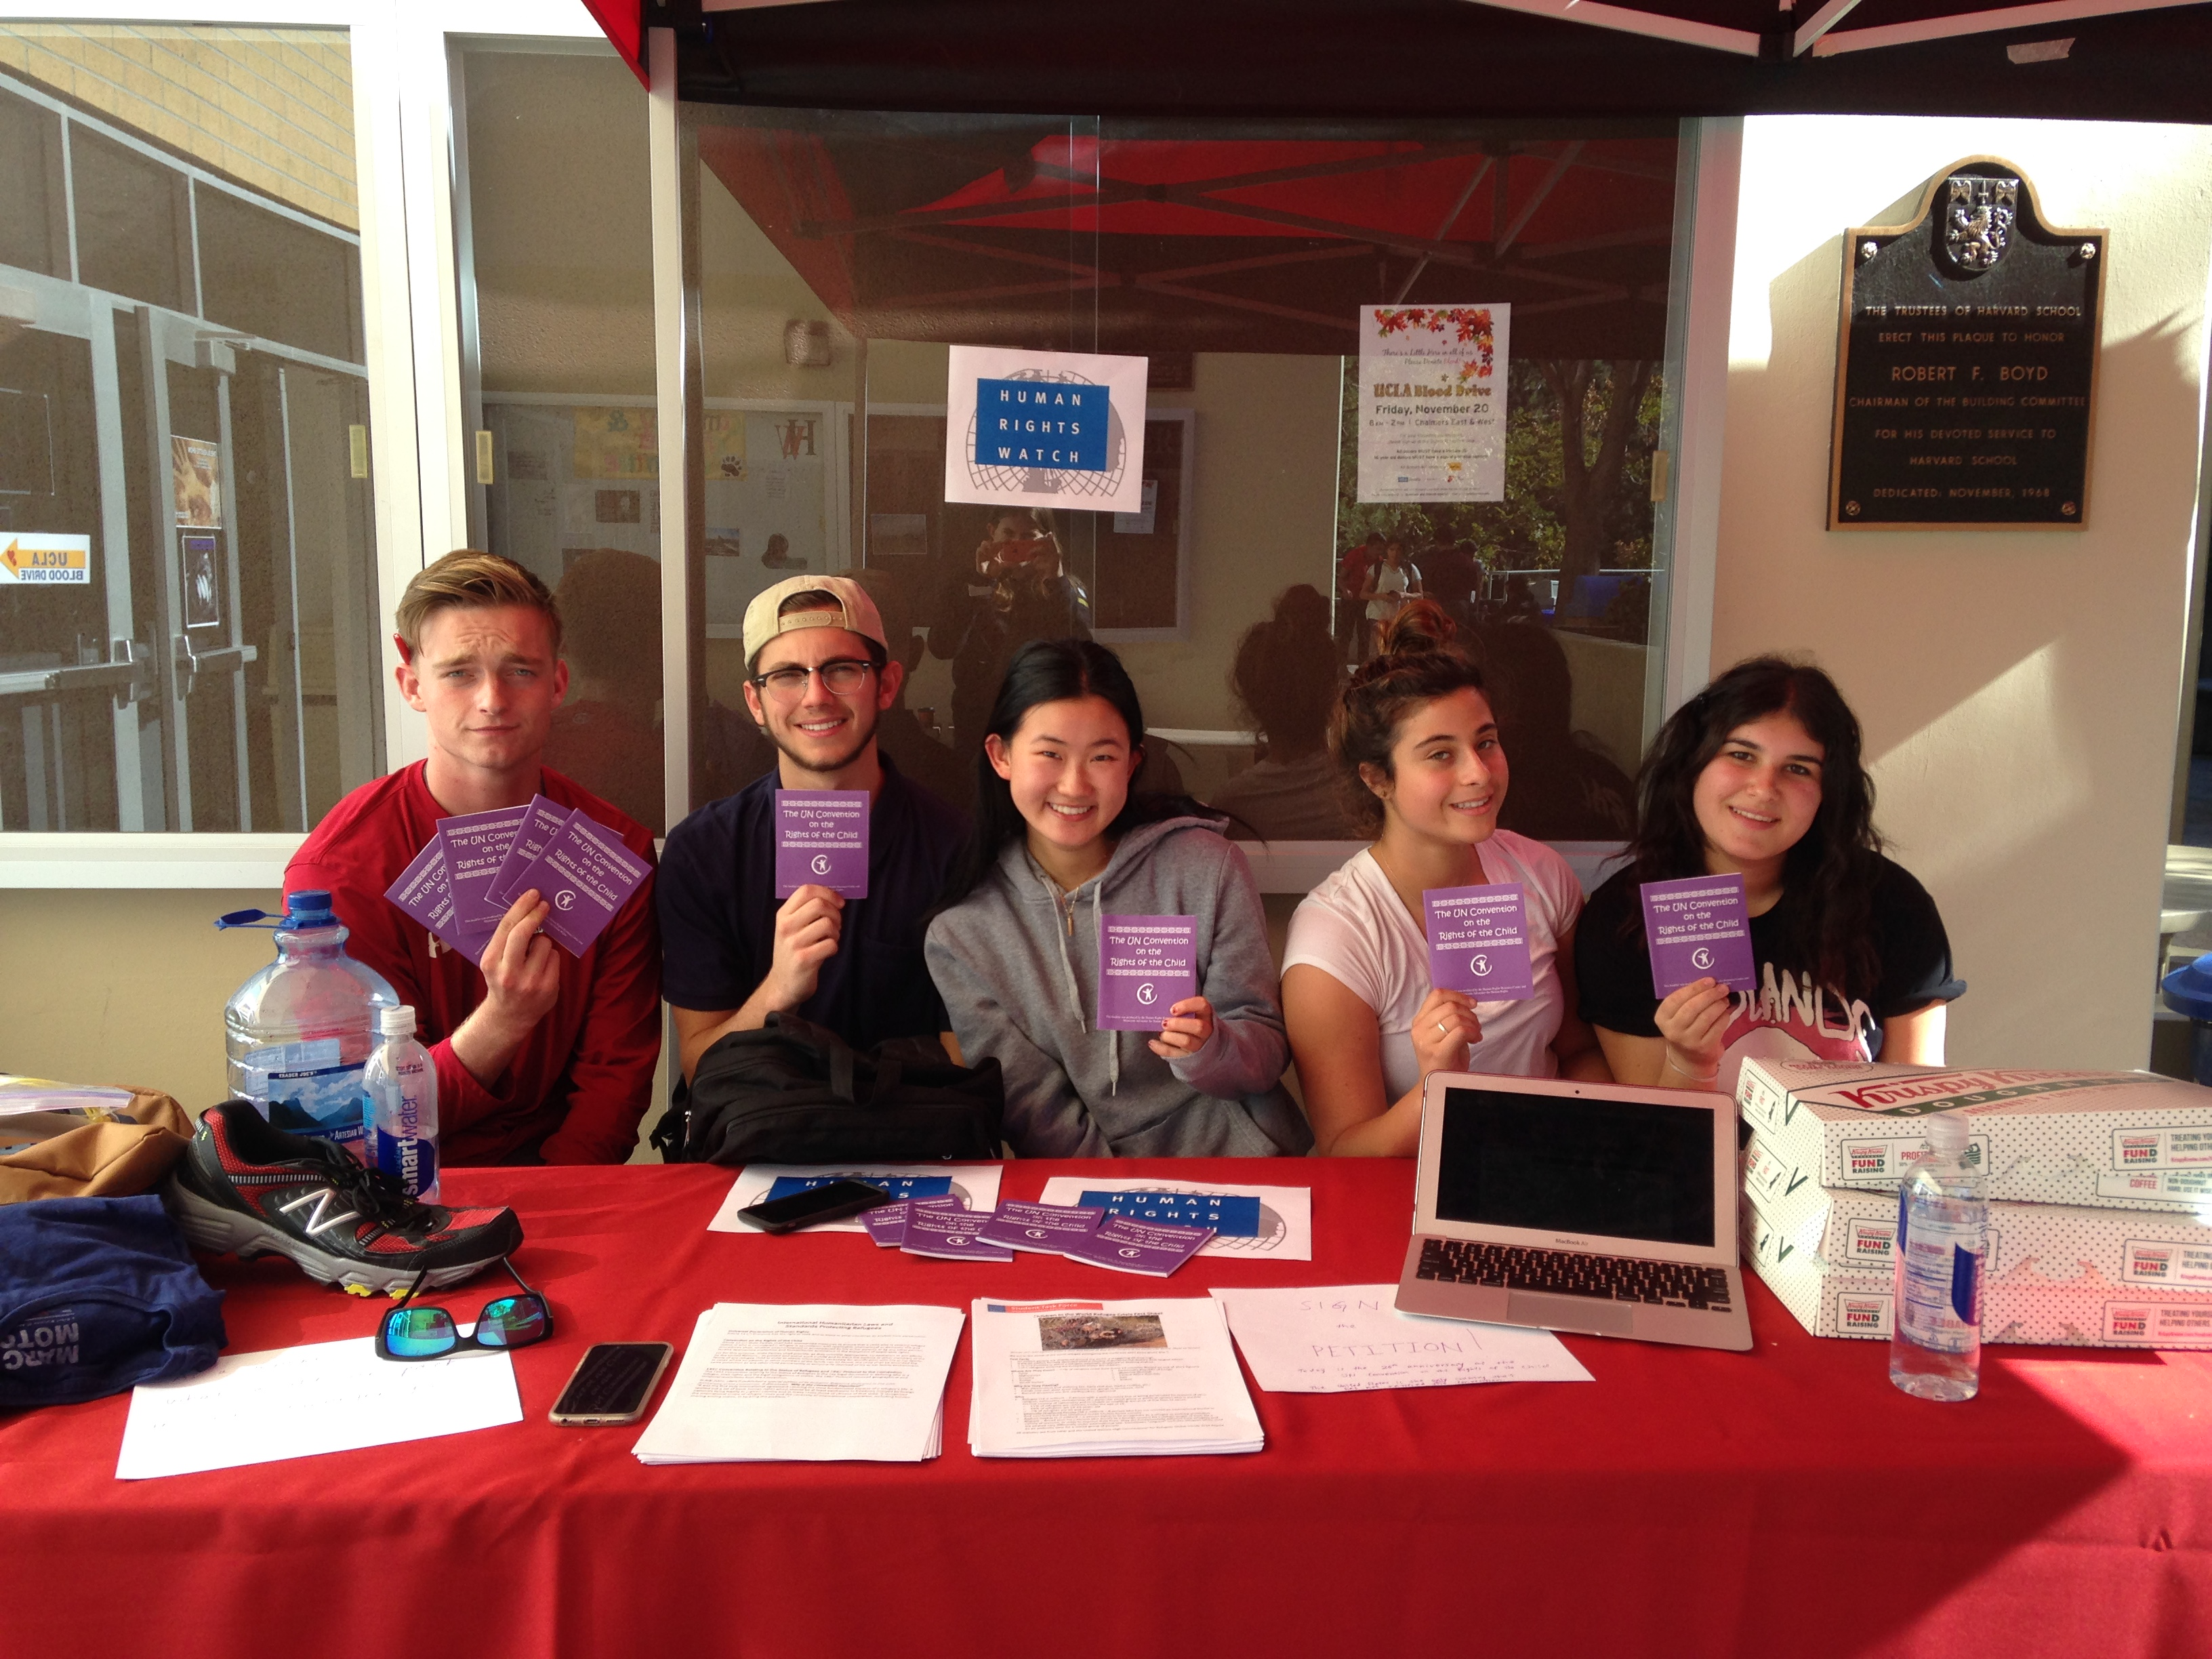 Participants encouraged the US government to ratify the CRC at Harvard-Westlake. Photo by Mary Garvey.